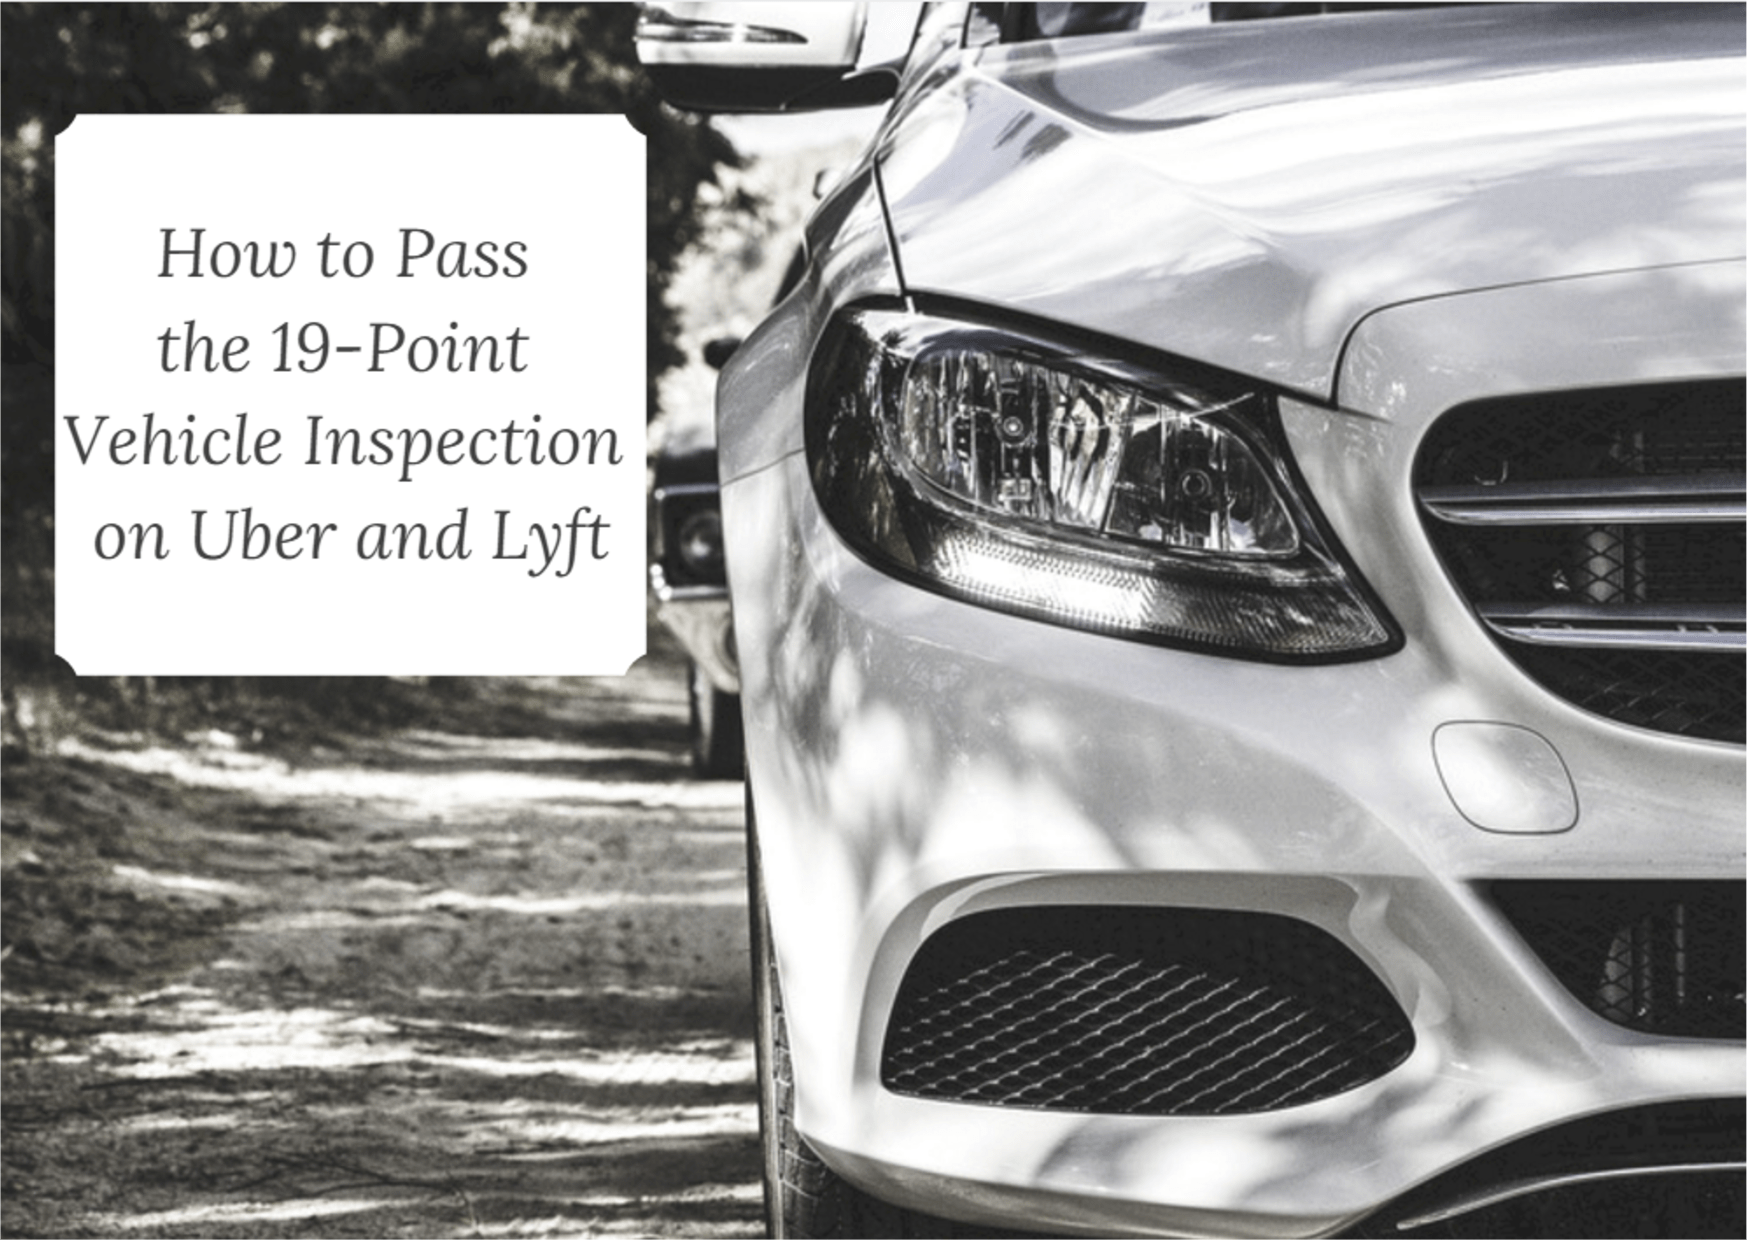 How to Pass the 19-Point Vehicle Inspection - HyreCar